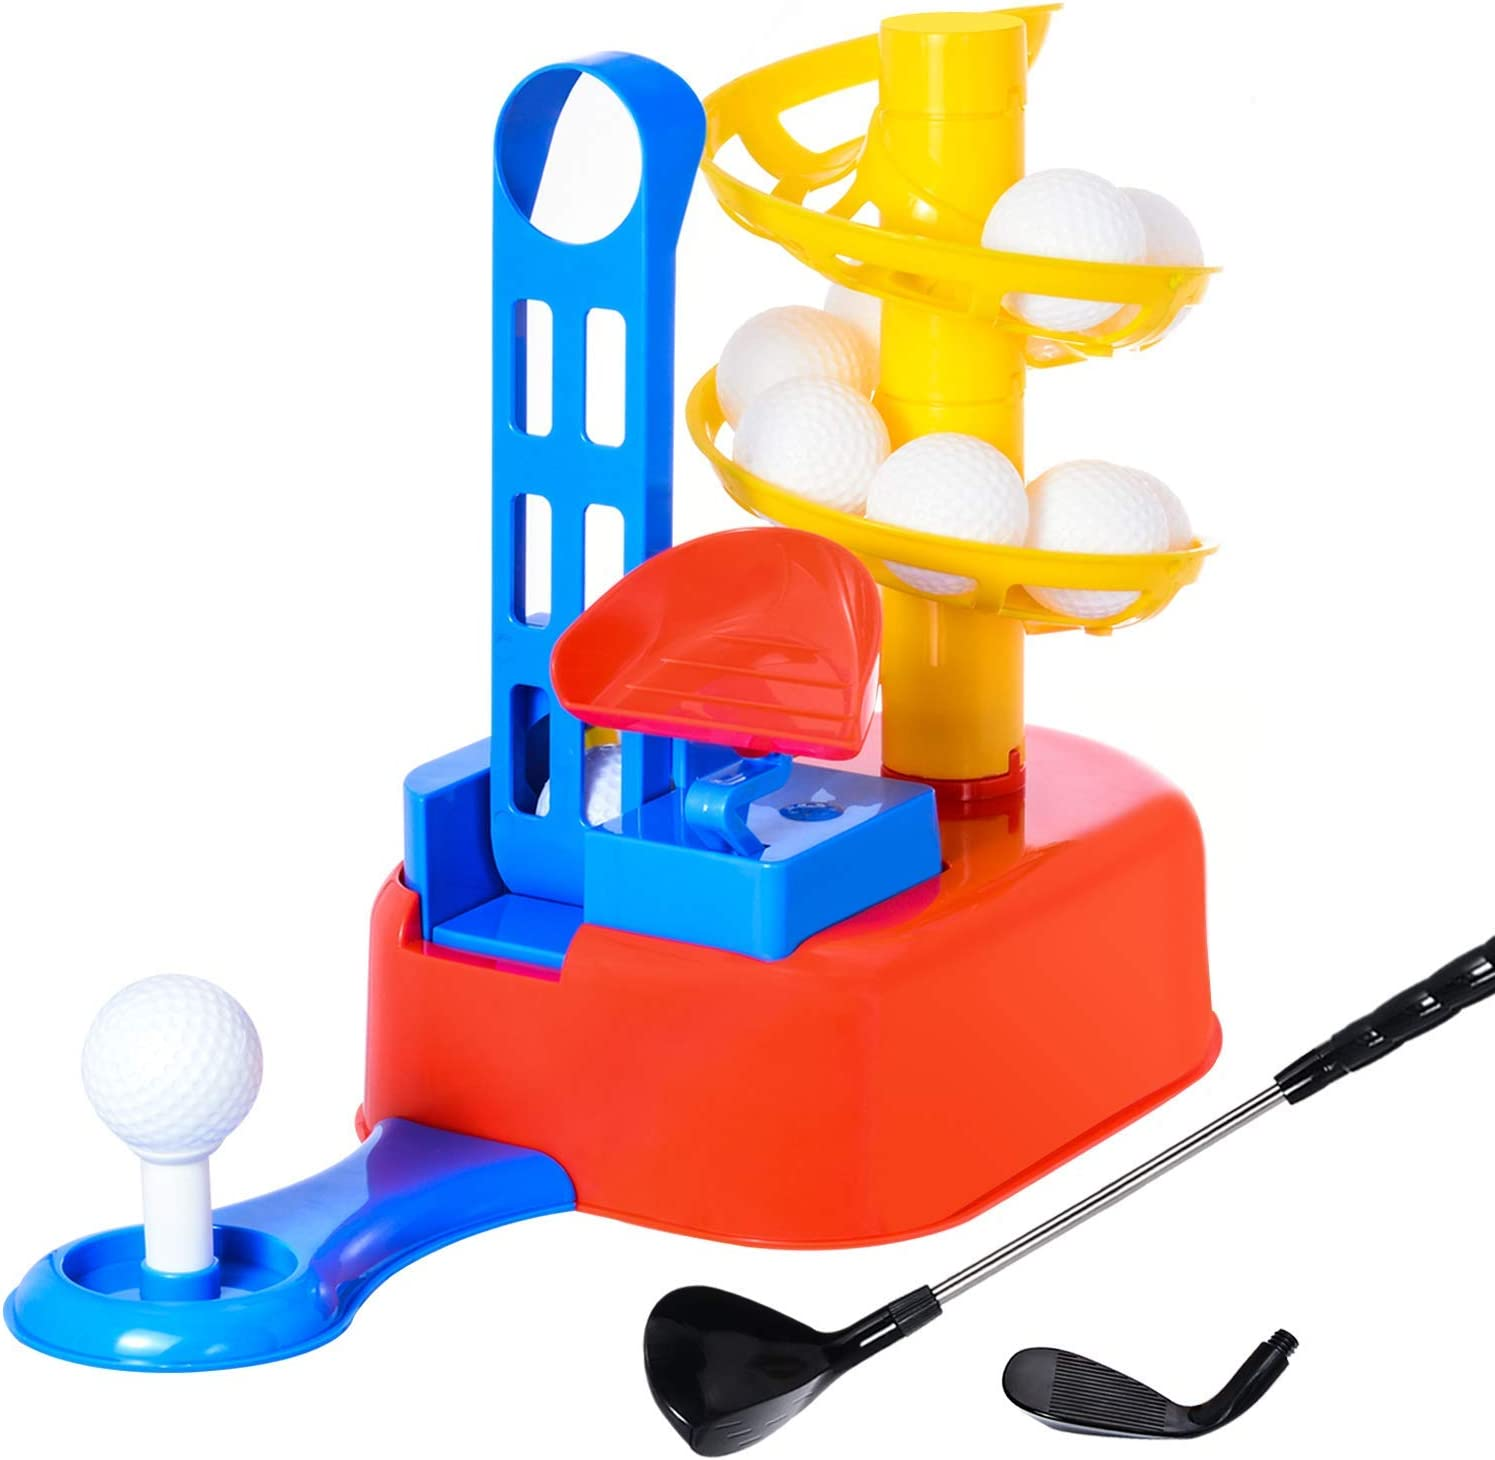 Exercise N Play Golf Toys Set, Kids Outdoor Toys, Kids Golf Clubs, Golf Ball Game, Early Educational